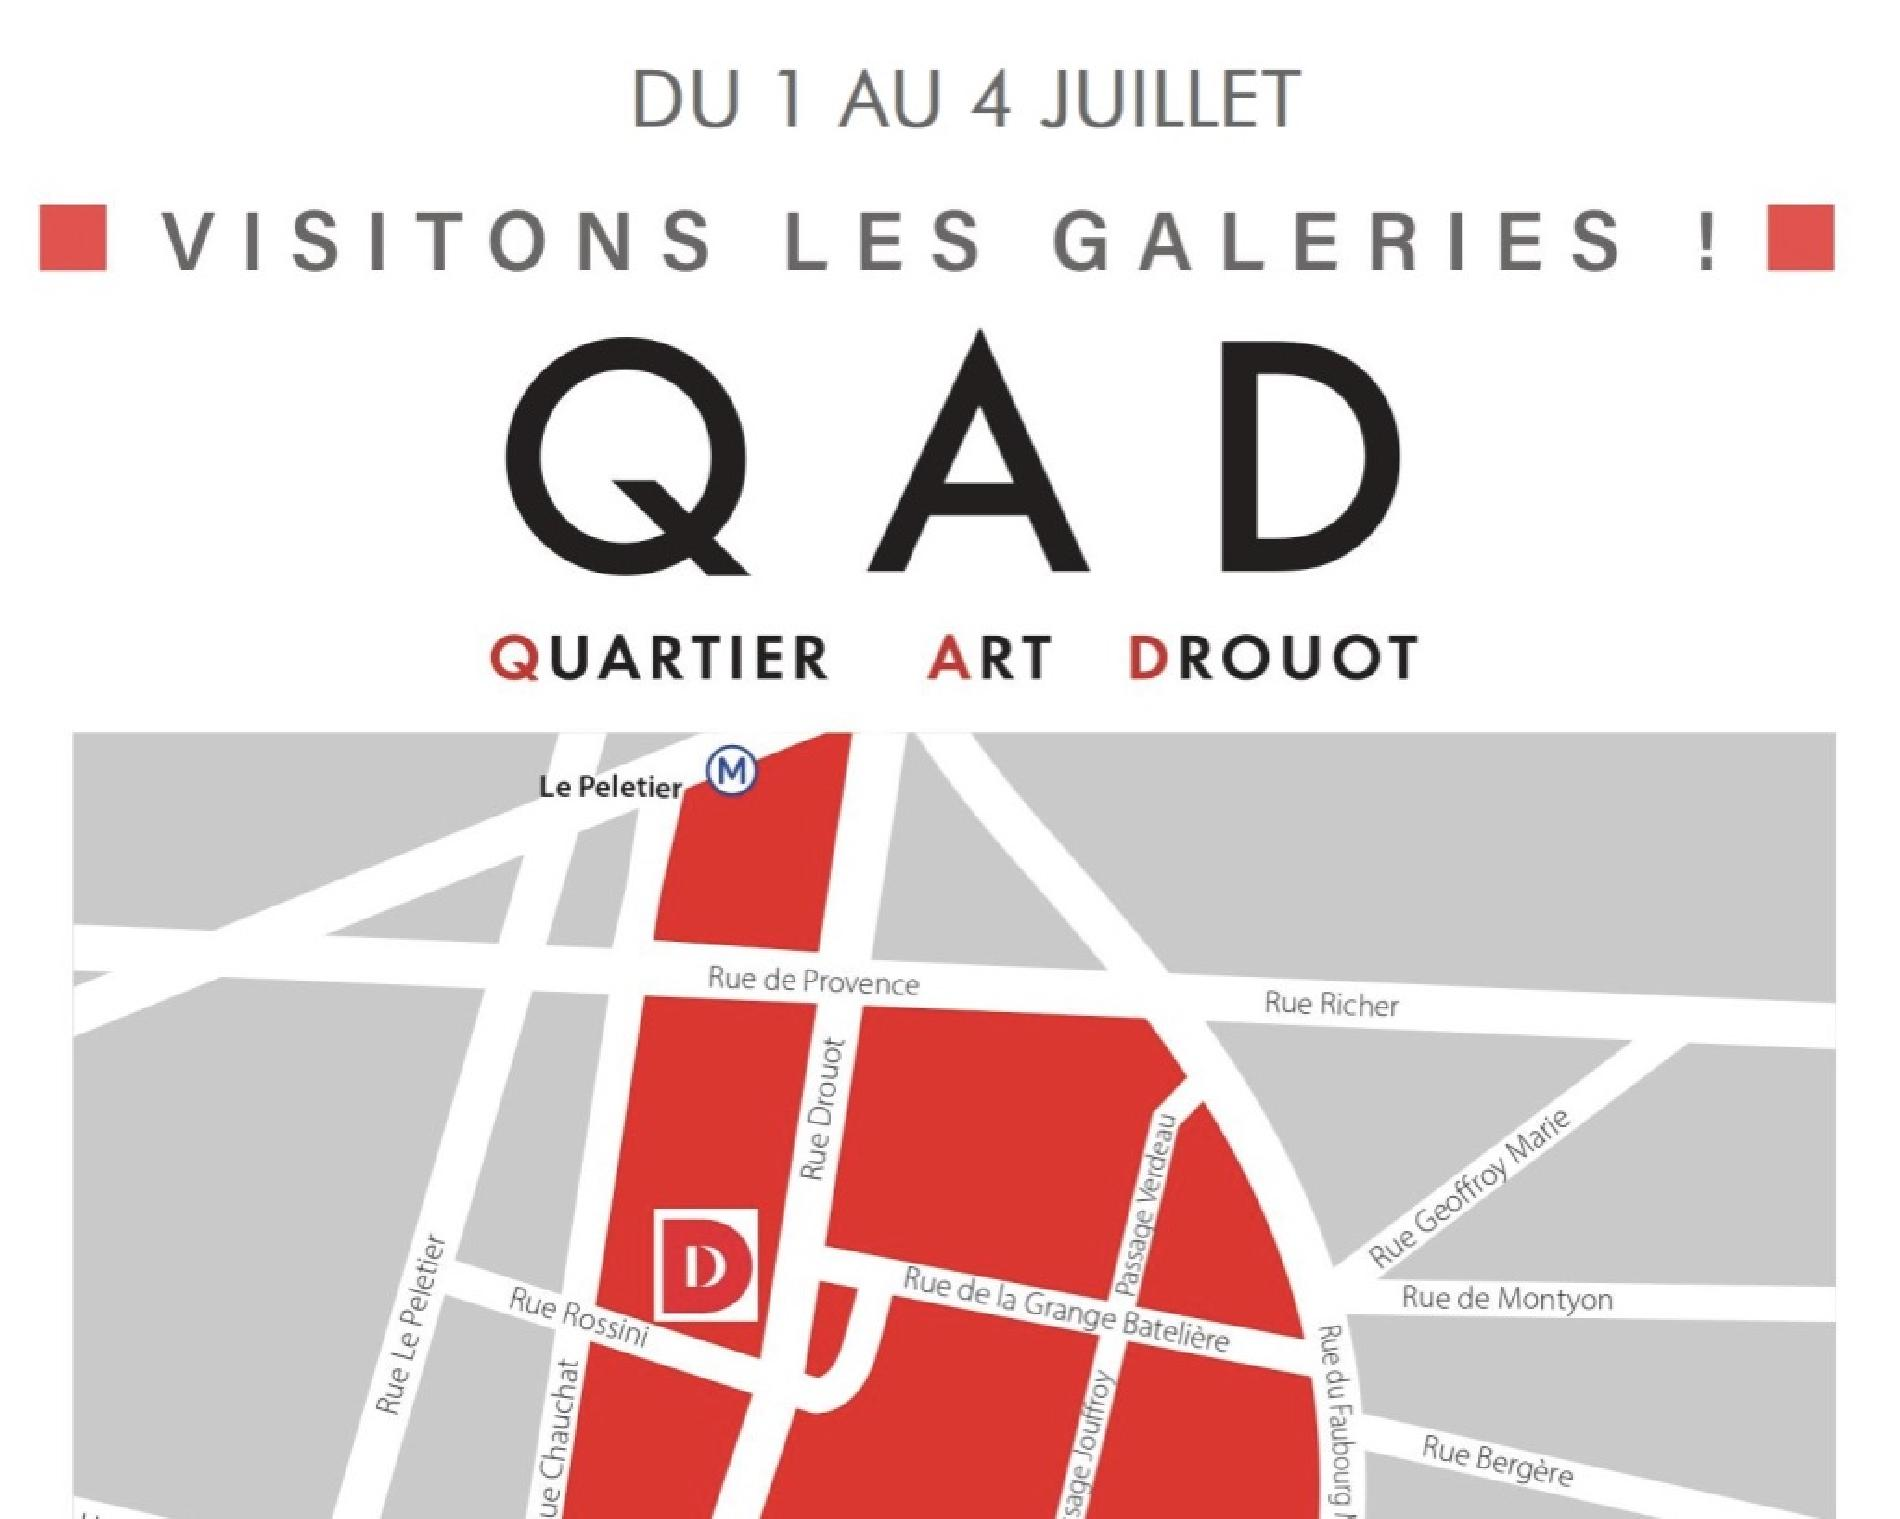 , Quartier Art Drouot I Visit the galleries!